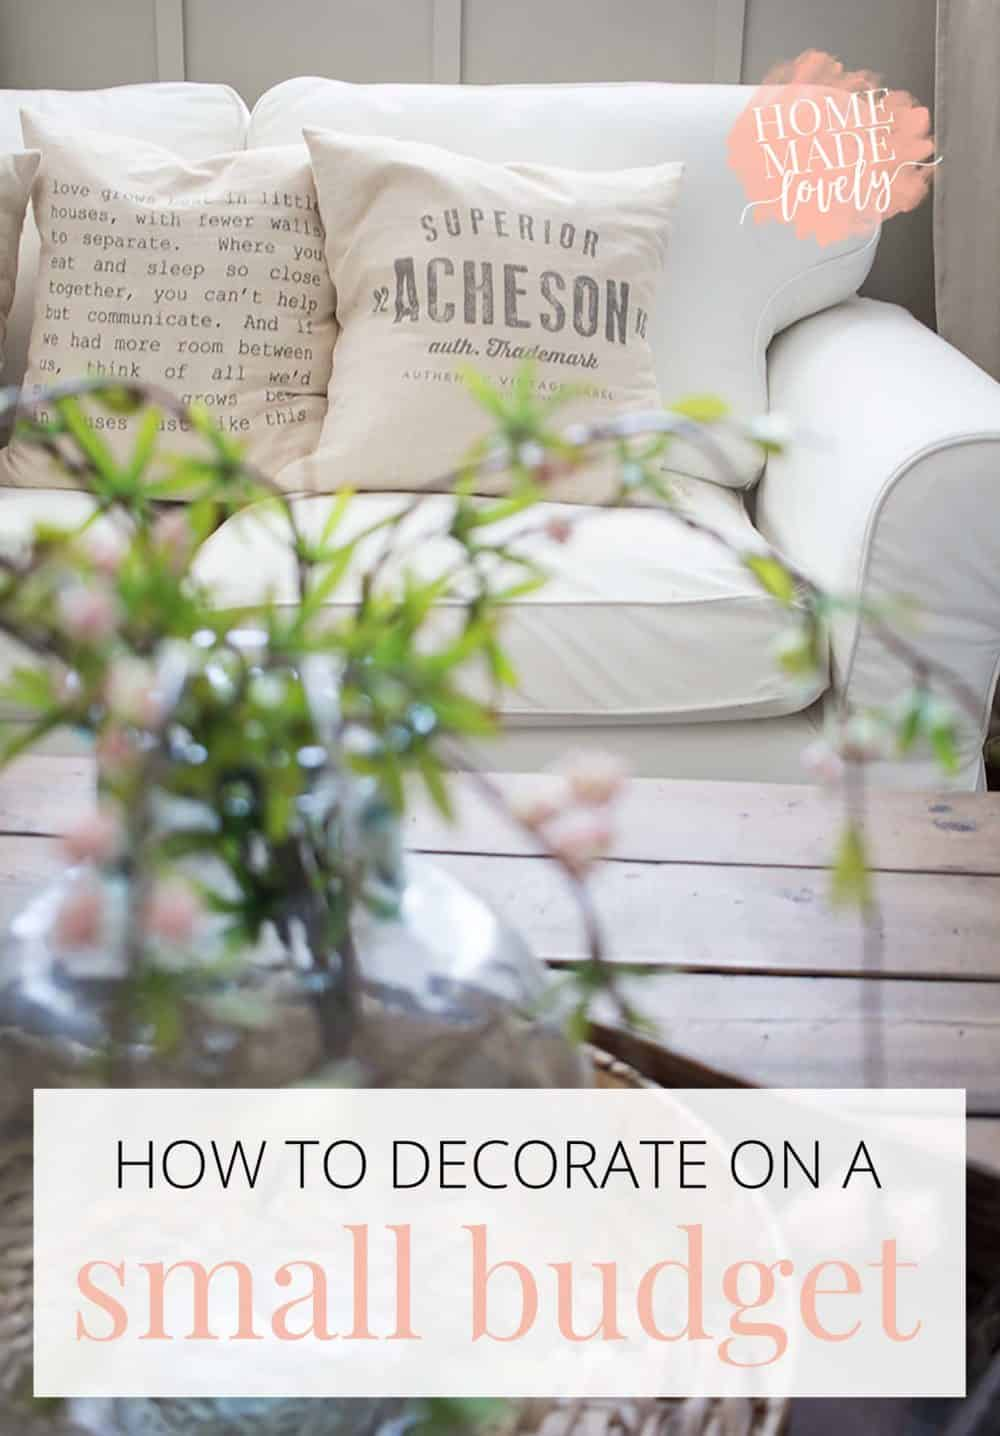 So you want to decorate, but your budget is small? Here's how to decorate on a small budget! 15 low-cost ideas plus where to shop for budget finds.